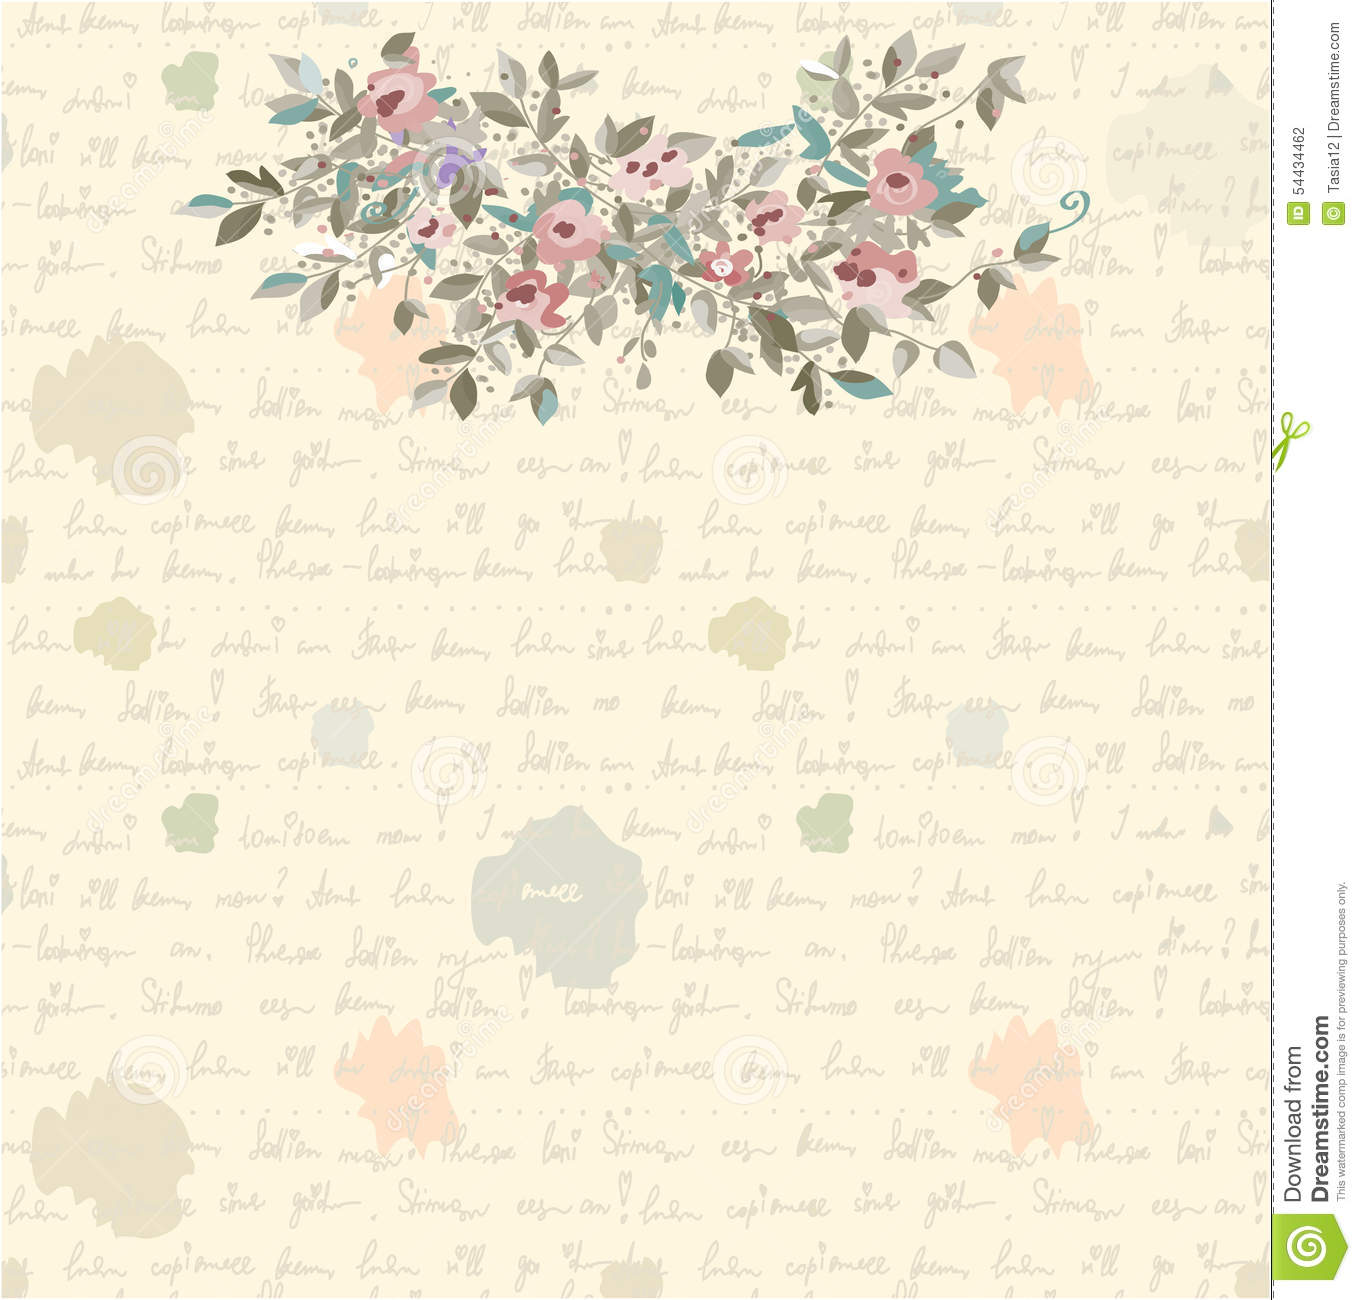 Retro Letter Background With Flowers And Text Stock Vector